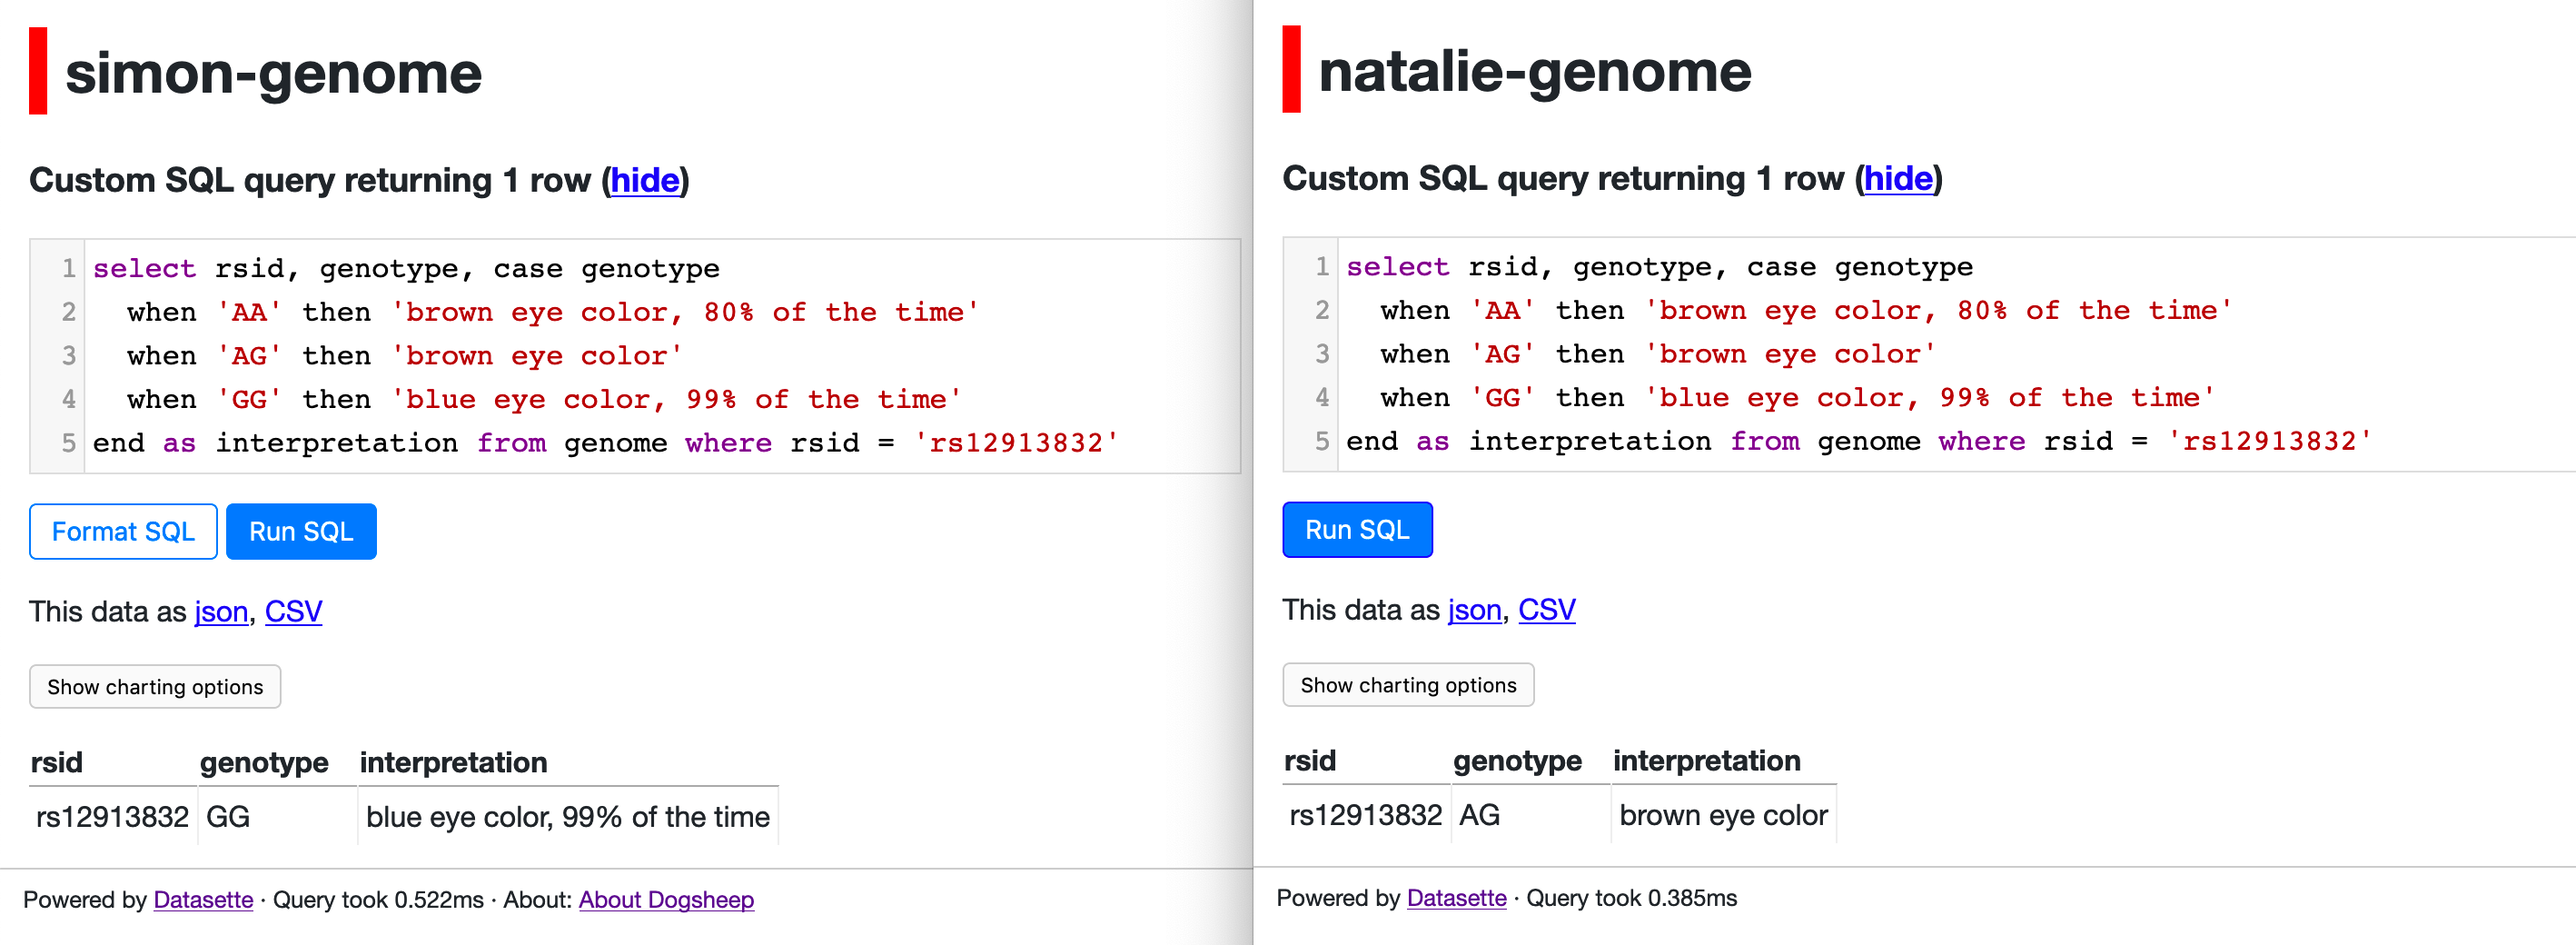 Running SQL against my genome and Natalie's genome